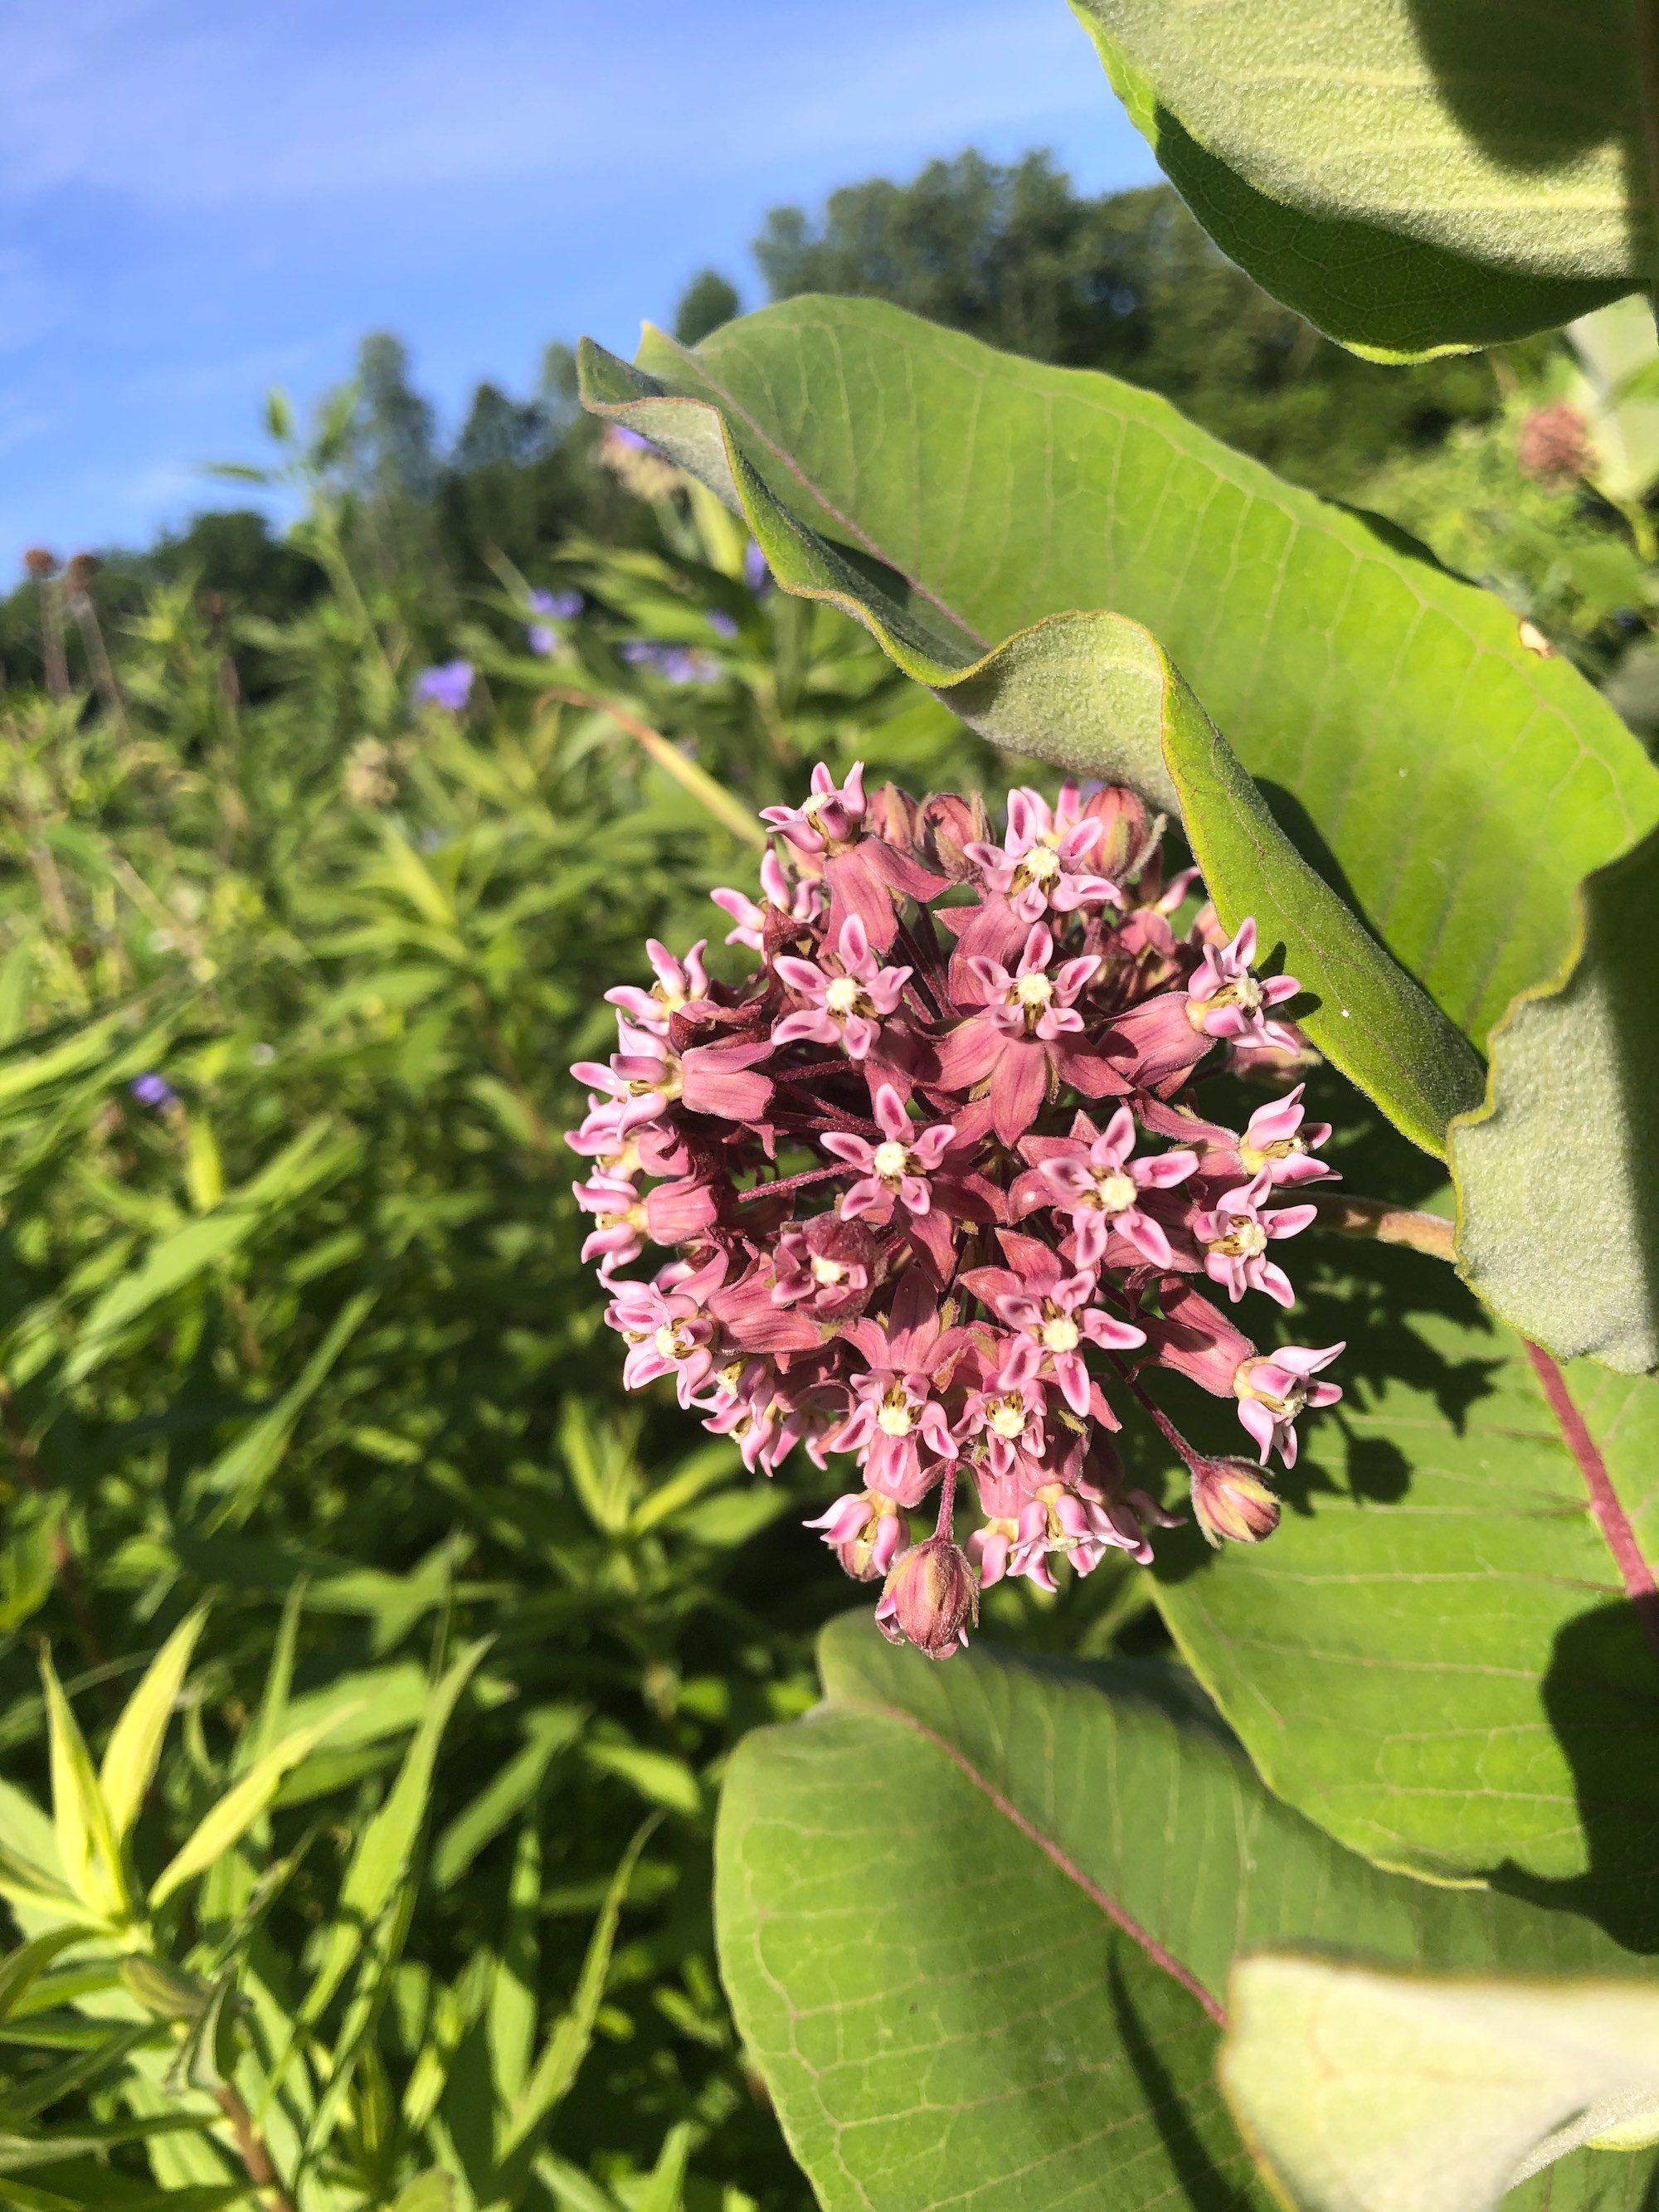 Common Milkweed on shore of Marion Dunn Pond on June 23, 2020.